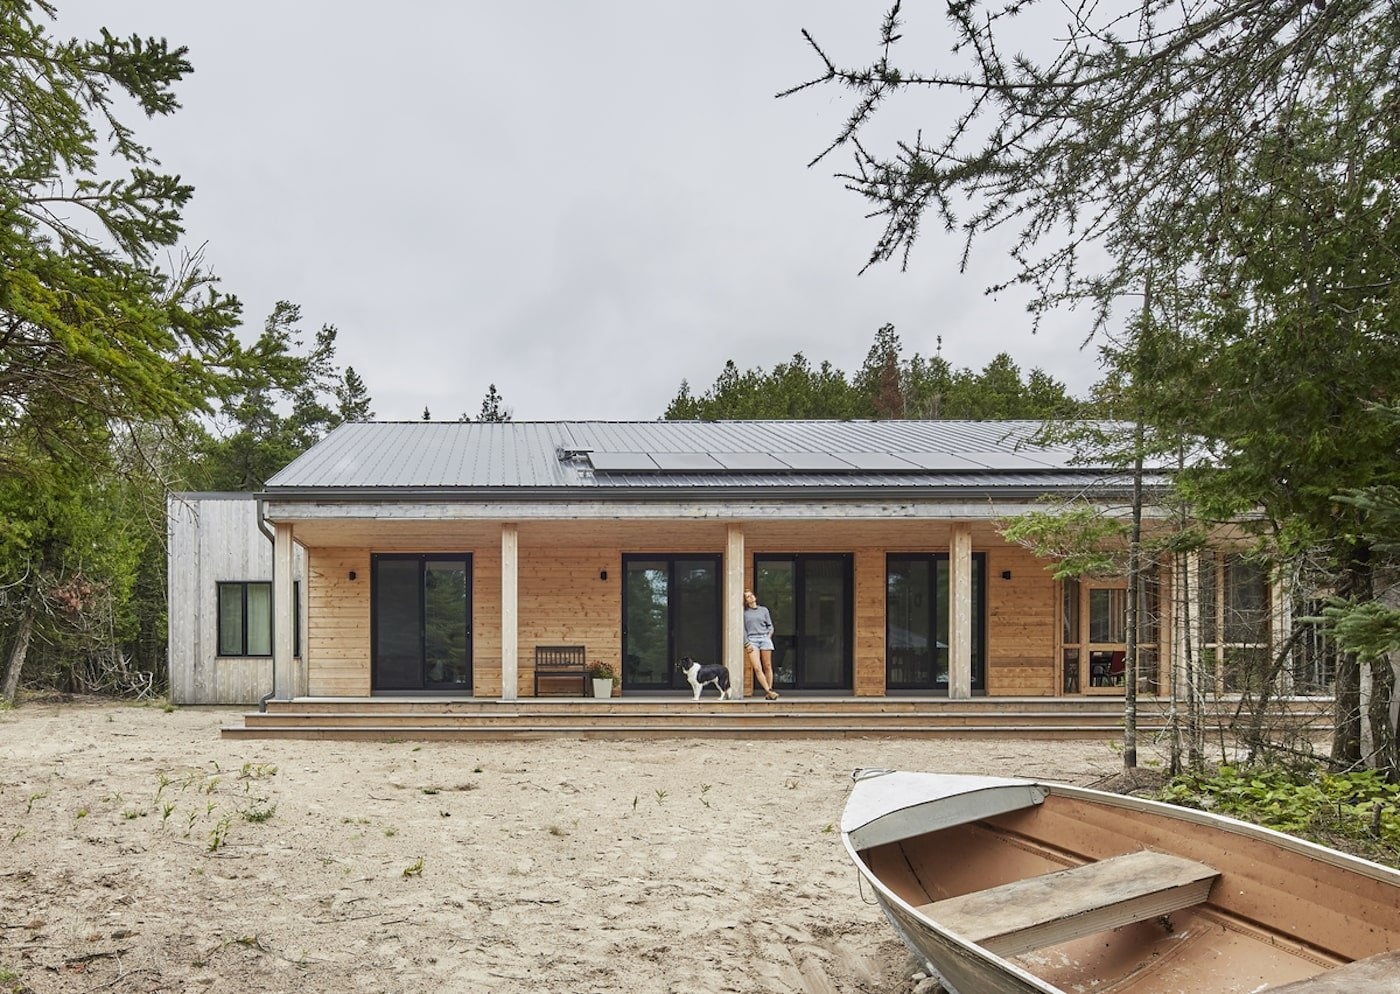 Timber rowboat in front of off-grid timber house